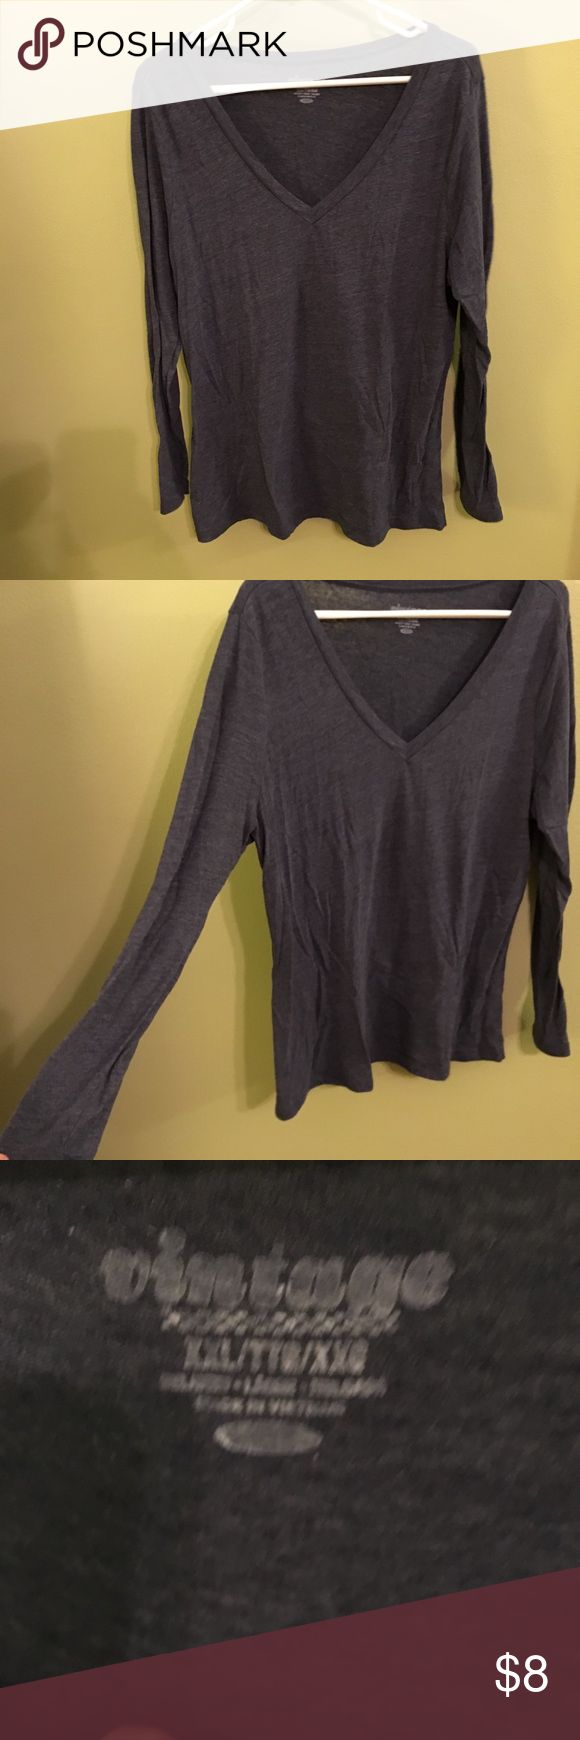 Old Navy Dark Blue Heather EveryWear V-Neck Tee Old Navy Dark Blue Heather EveryWear V-Neck Tee. Relaxed fit through body. Tee hits below waist. Soft, medium-weight slub-knit jersey.  Great condition. Size XXL.  100% cotton Old Navy Tops Tees - Long Sleeve